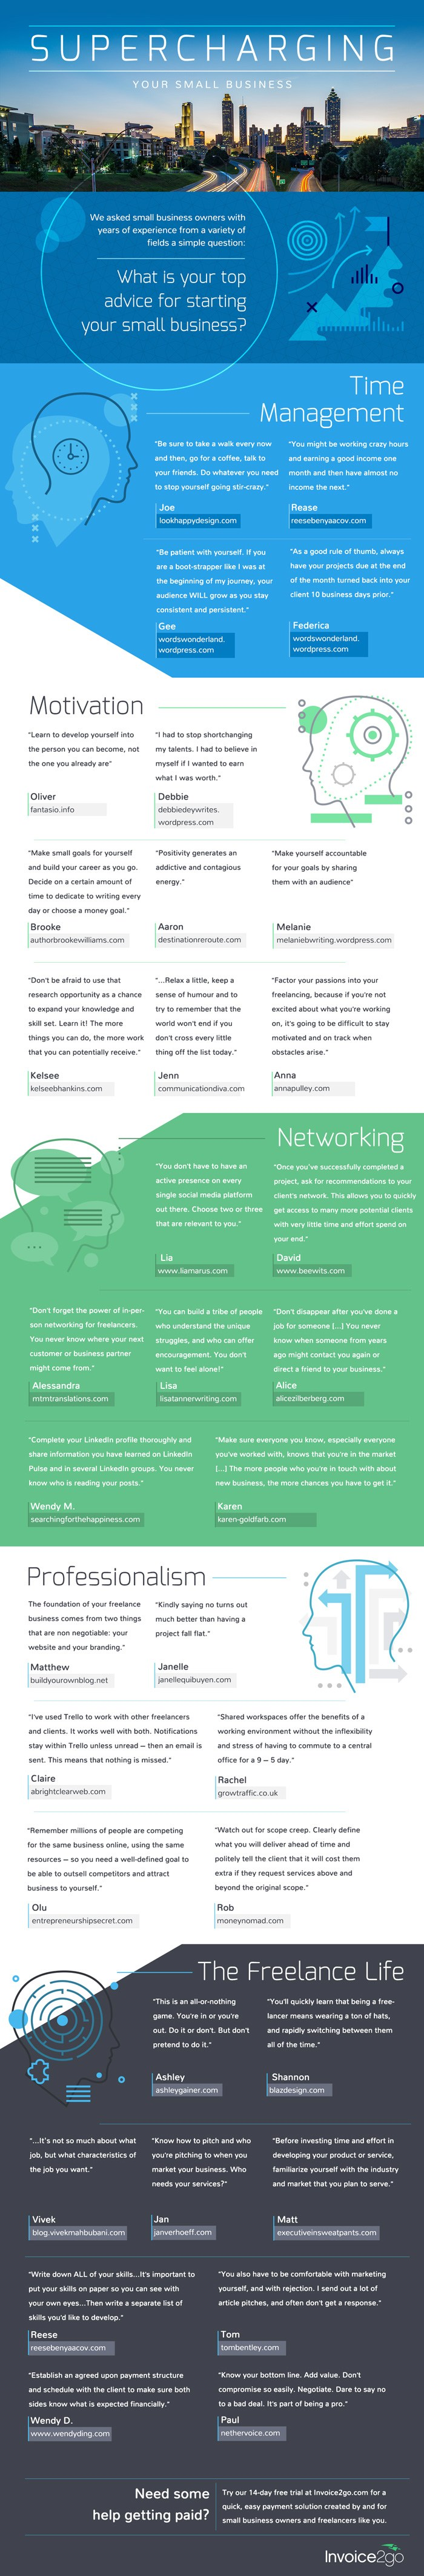 tips for small business owners infographic_invoice2go